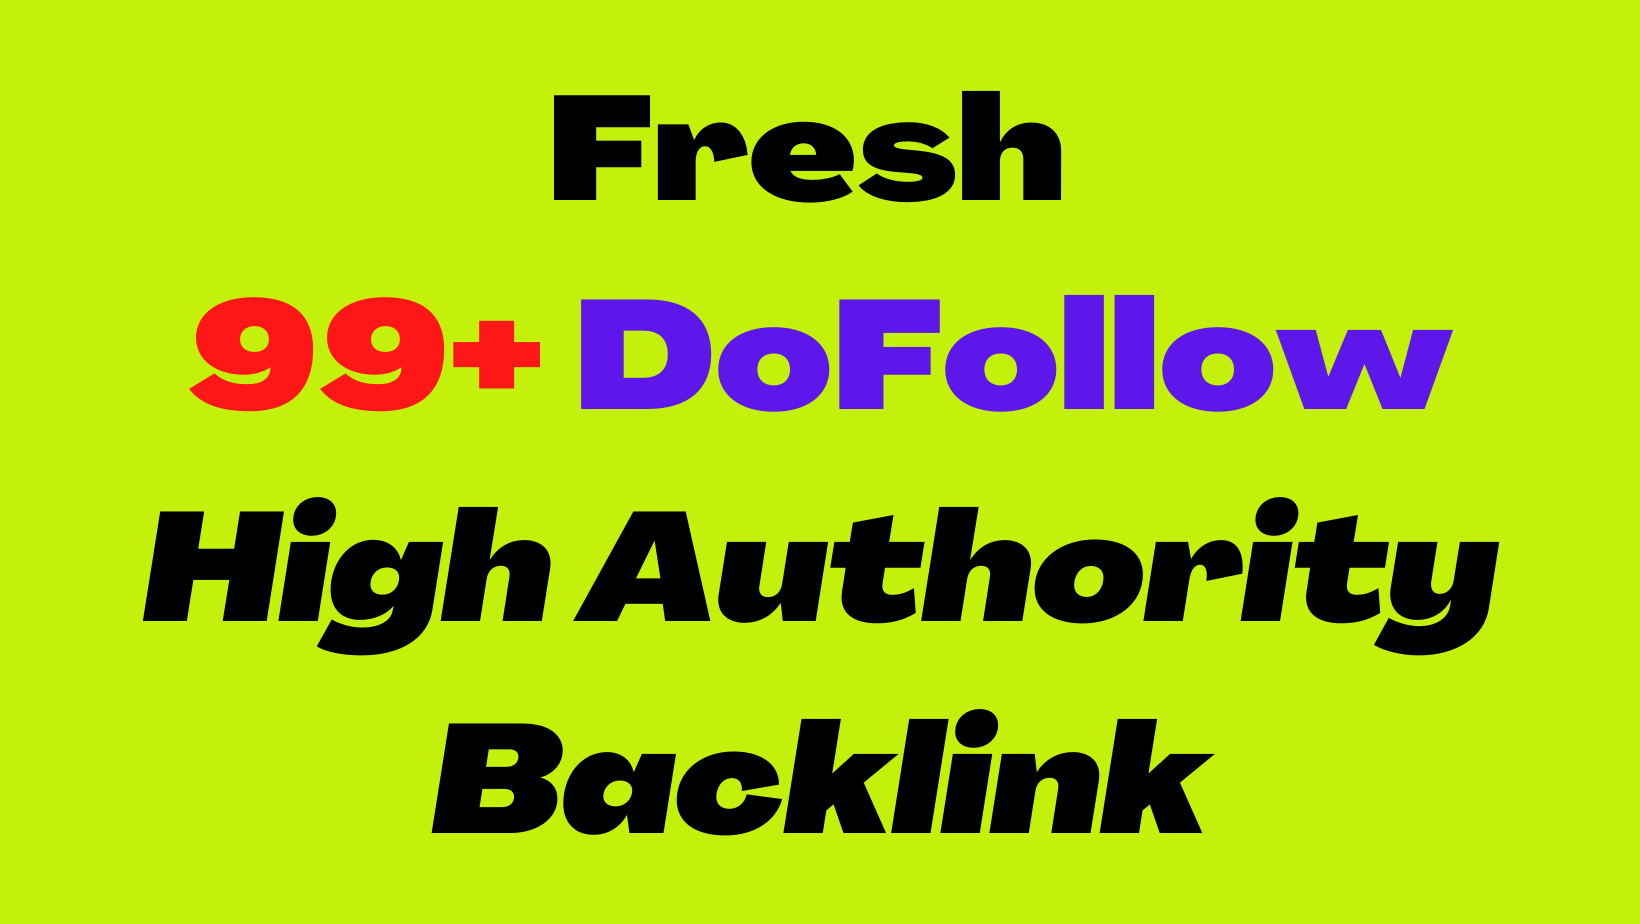 Fresh 99+ DoFollow High Authority Backlink with free Google index services